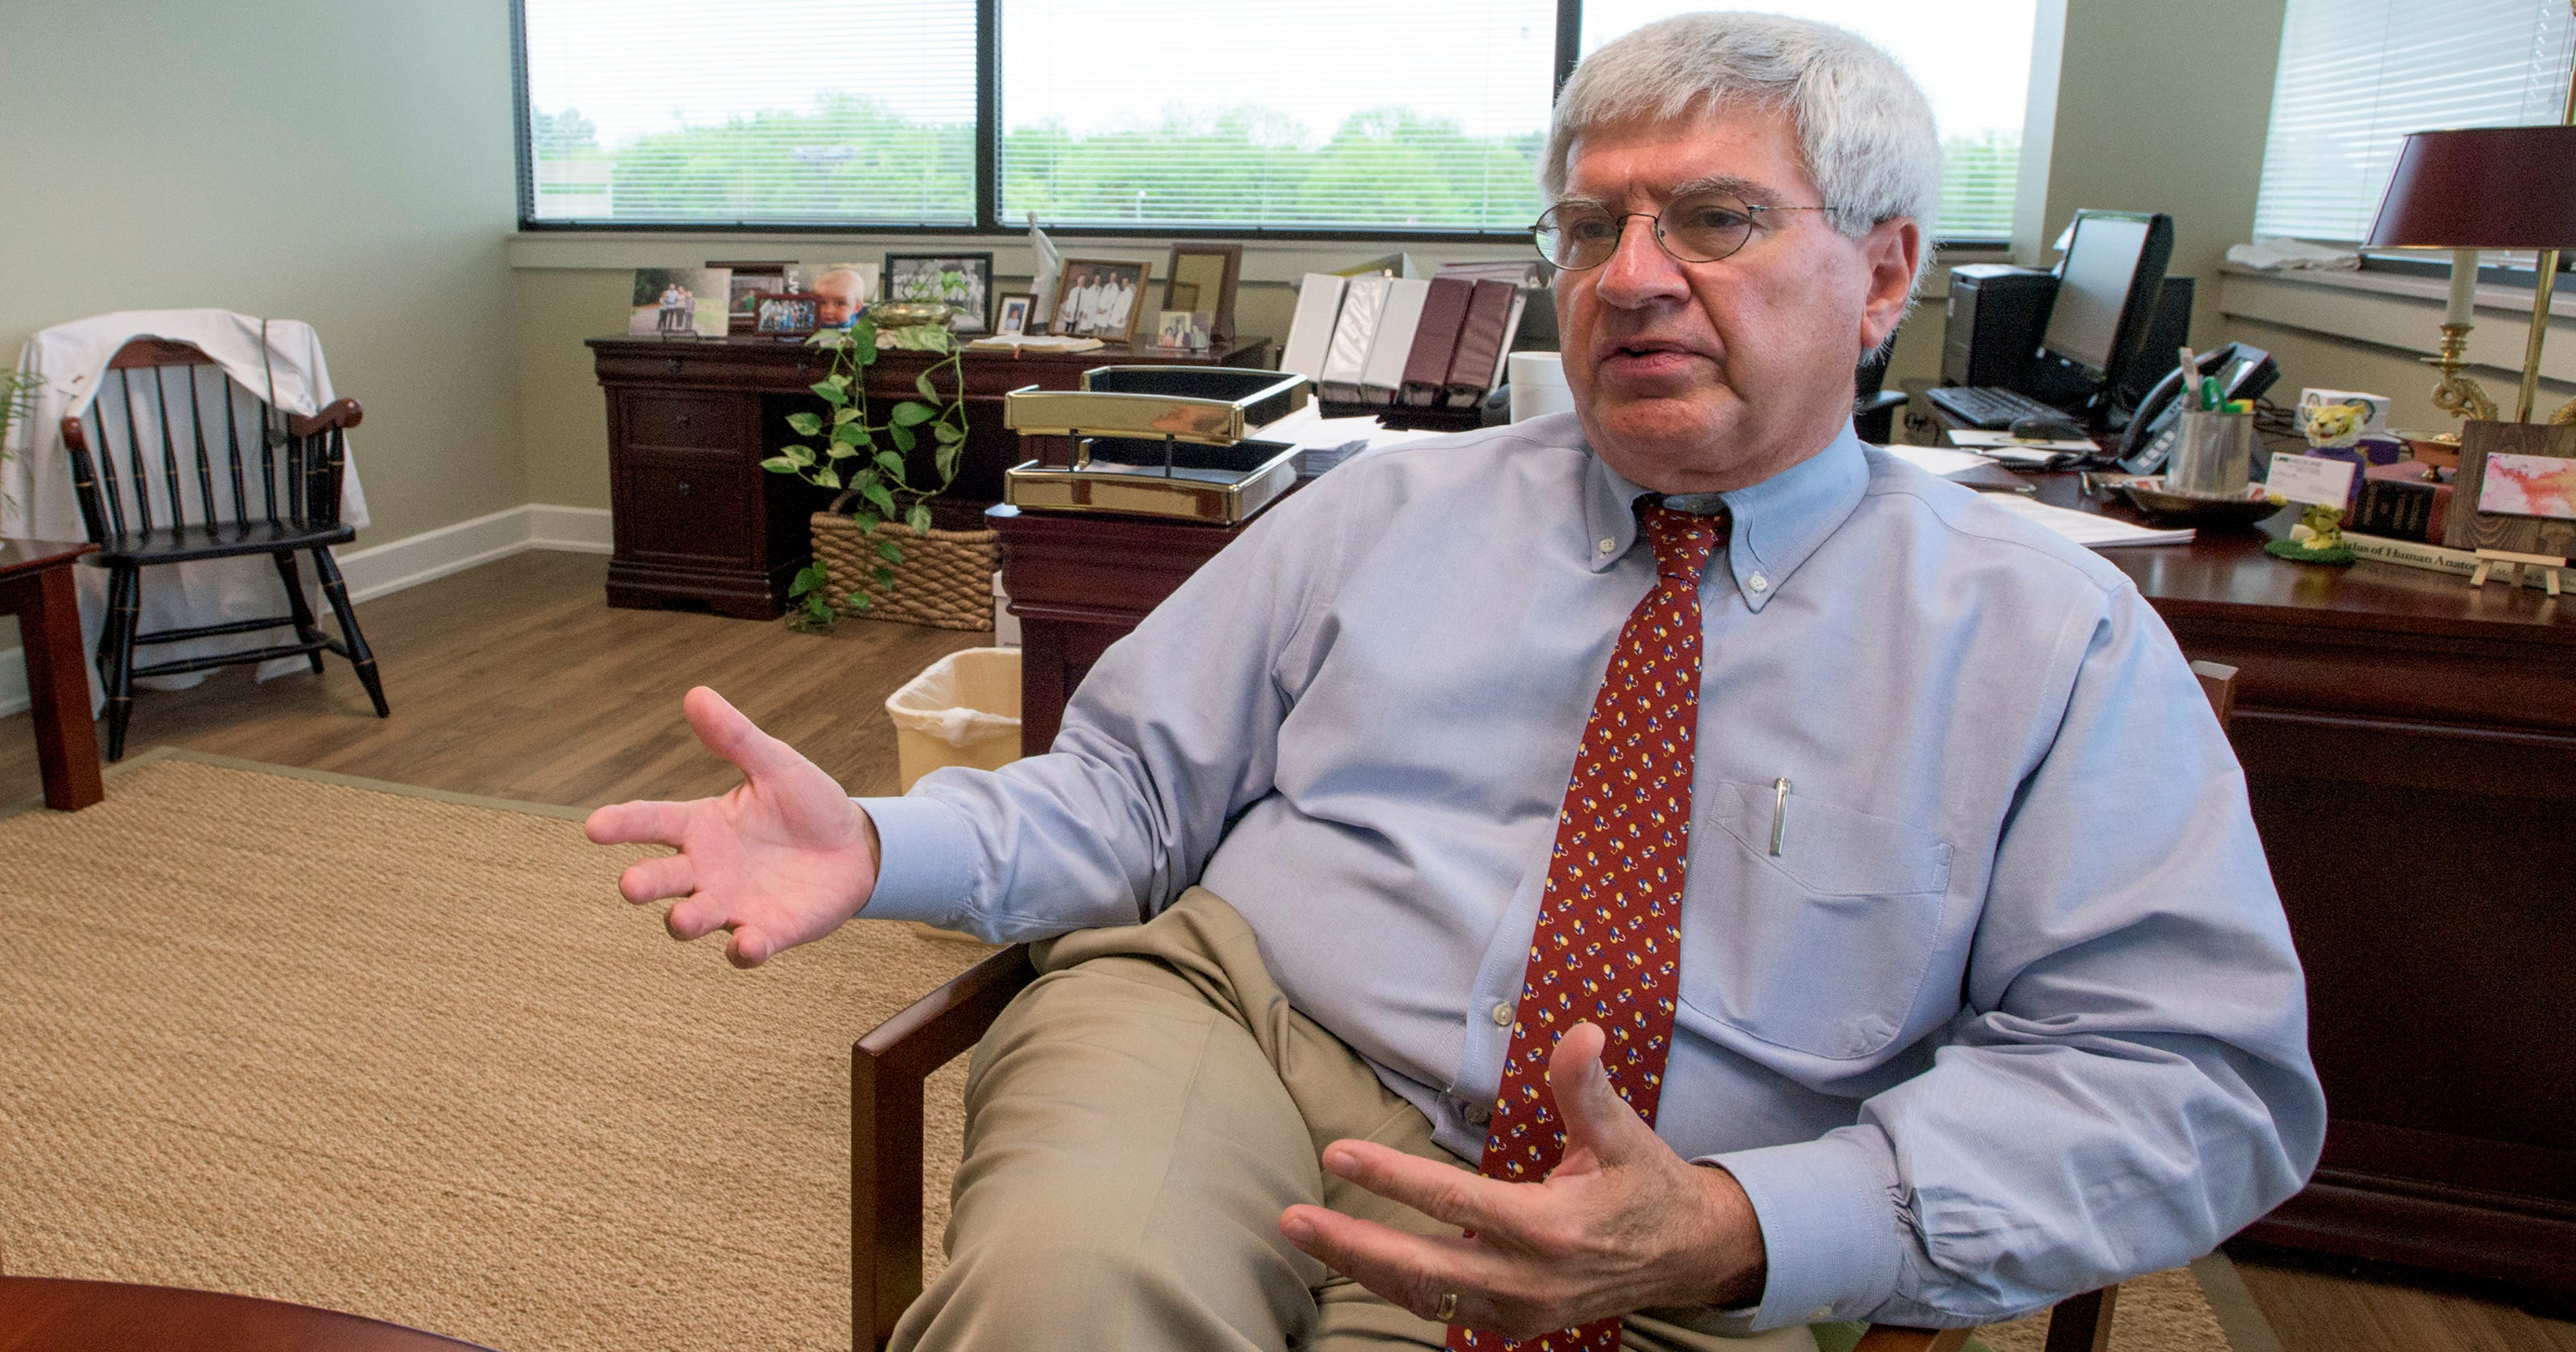 UAB Montgomery dean Wick Many retires next month